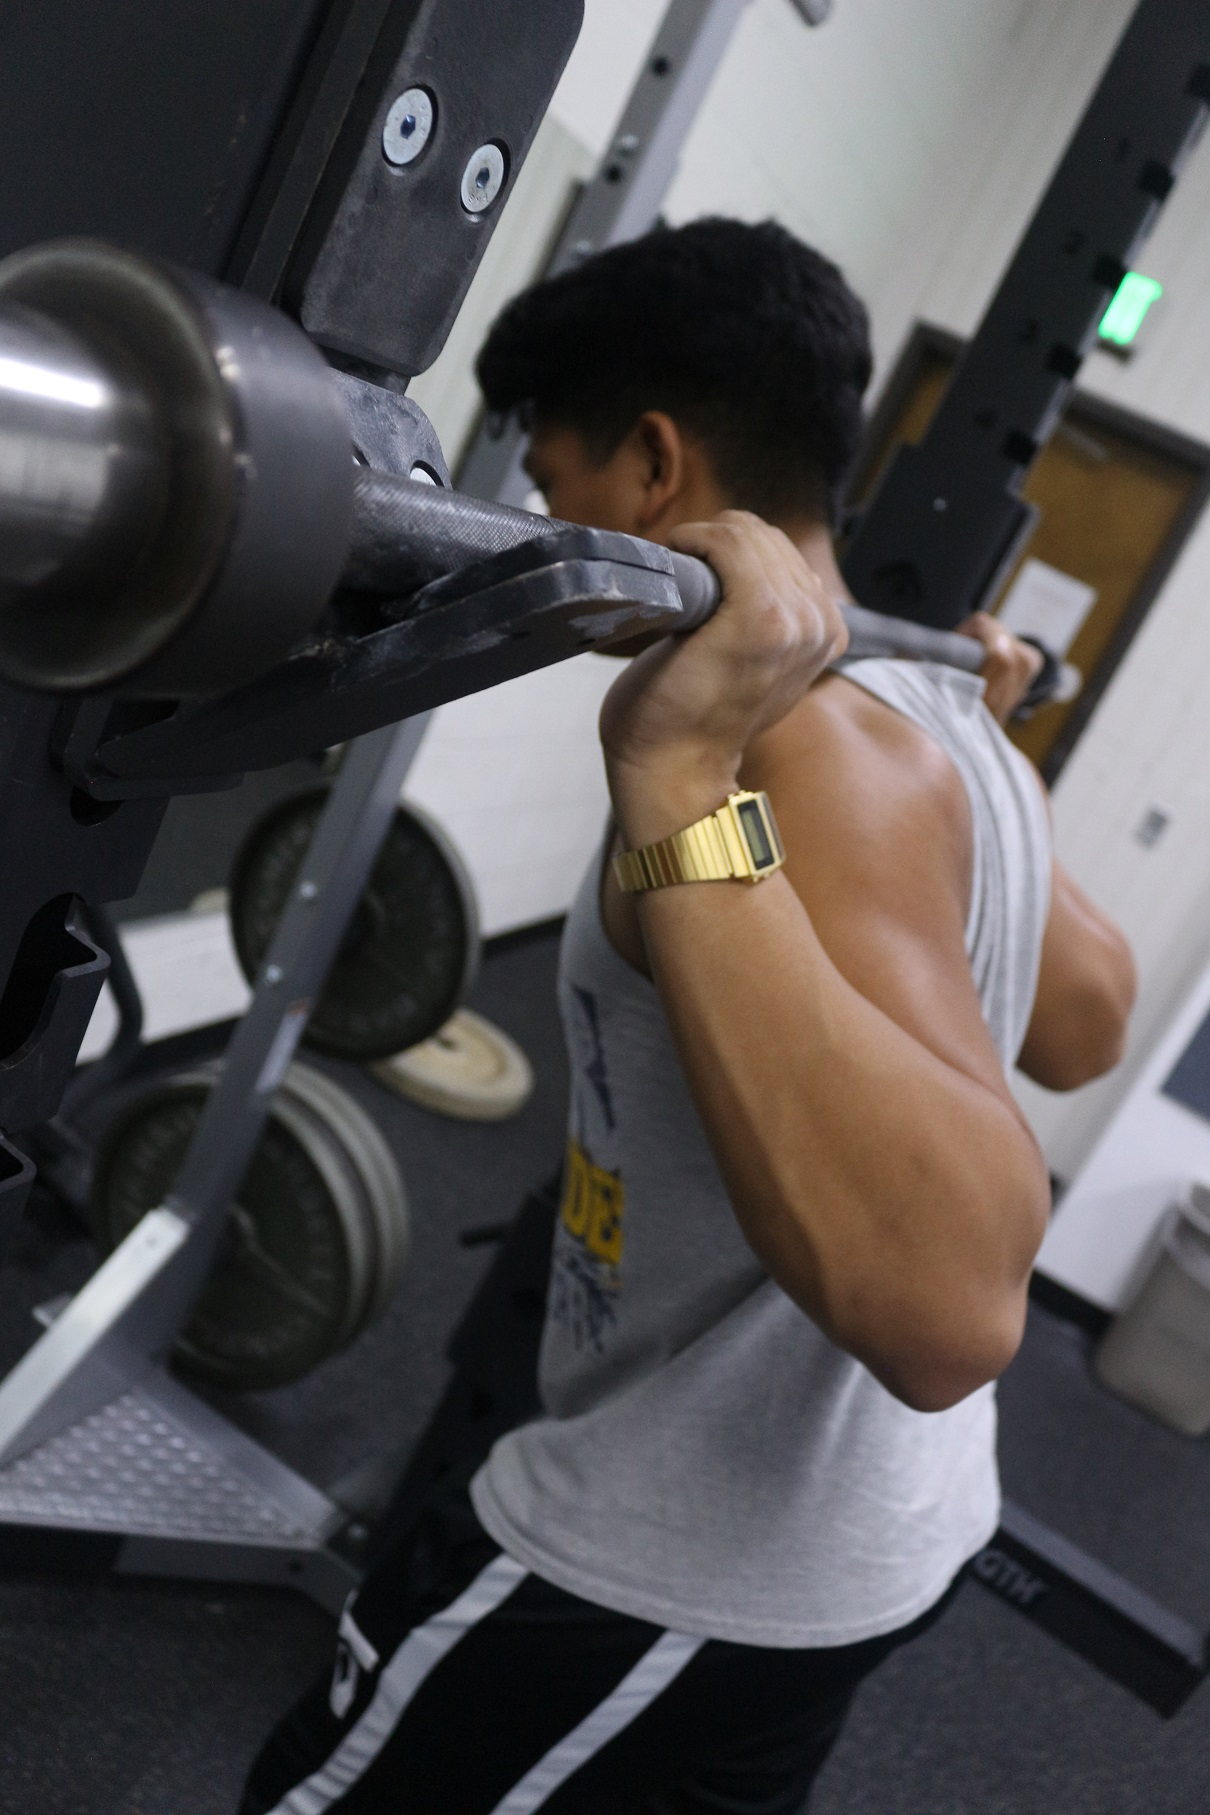 Senior James Tumbucon sets up for warmup squats with an empty barbell at the Glendale YMCA.